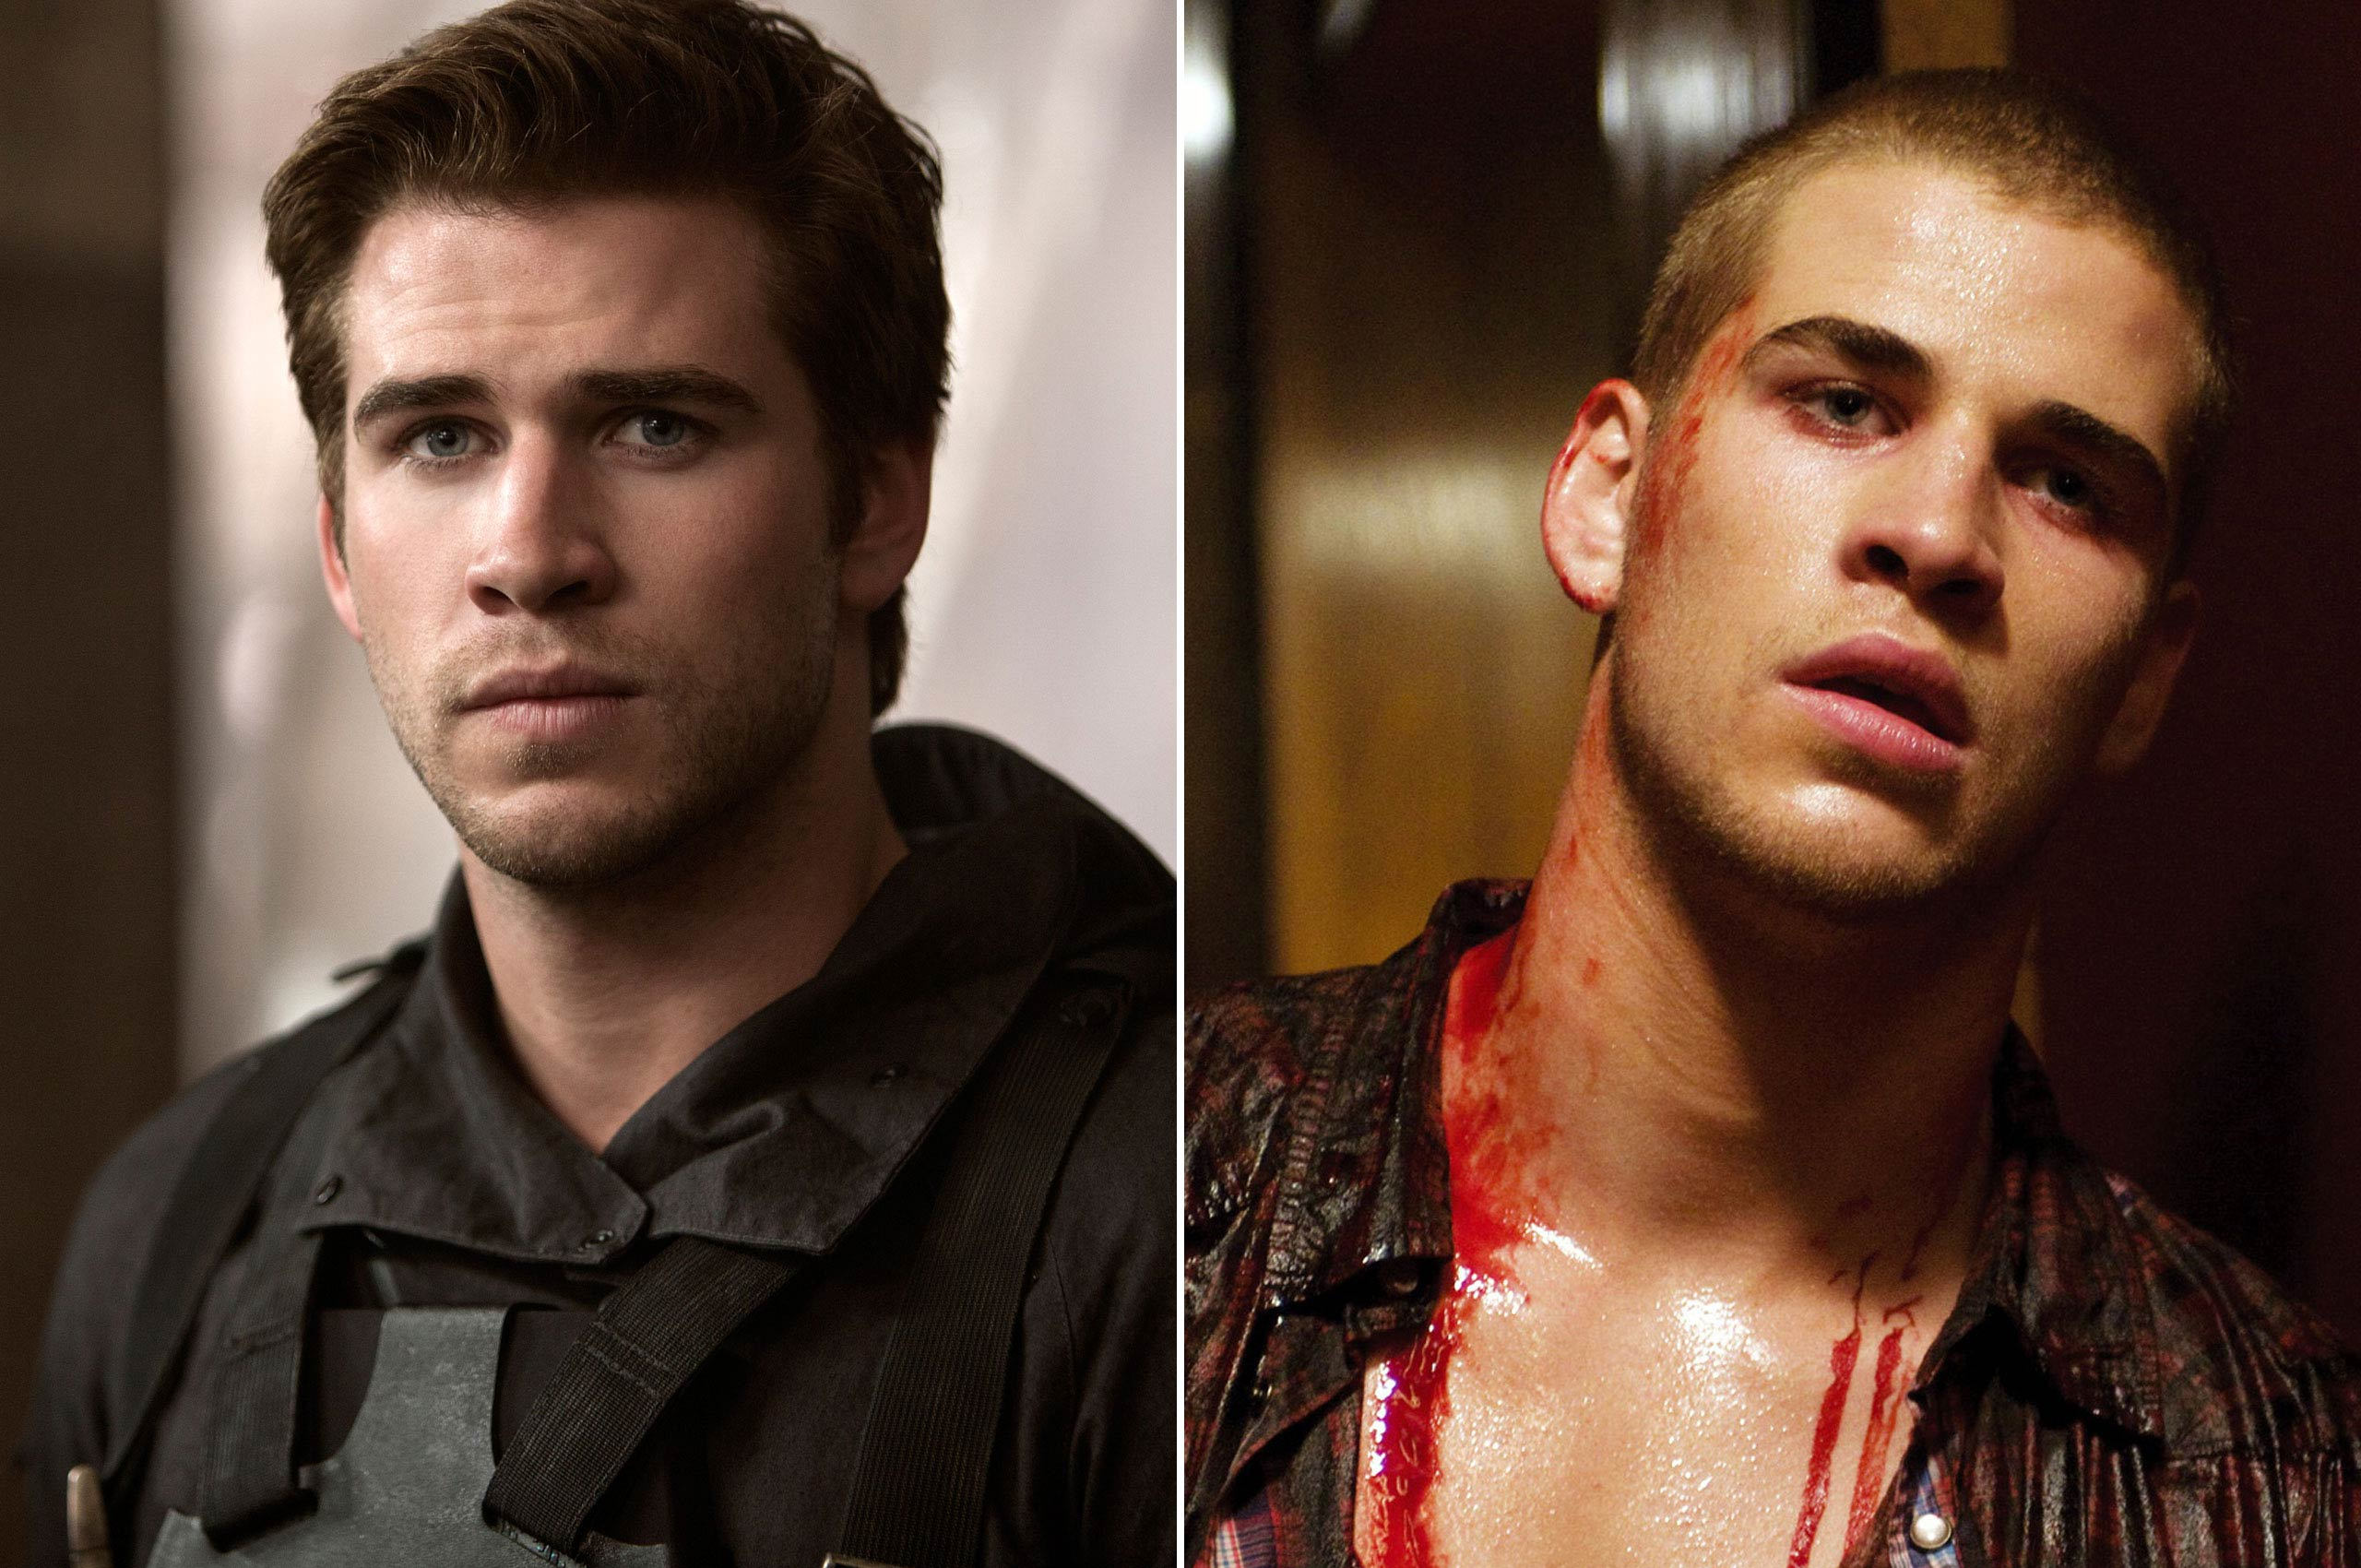 Liam Hemsworth, aka the real life brother of Thor, plays Katniss' love interest Gale Hawthorne in the <i>Hunger Games</i> movies and also played a runaway teen named Victor in the 2009 British thriller <i>Triangle</i>.